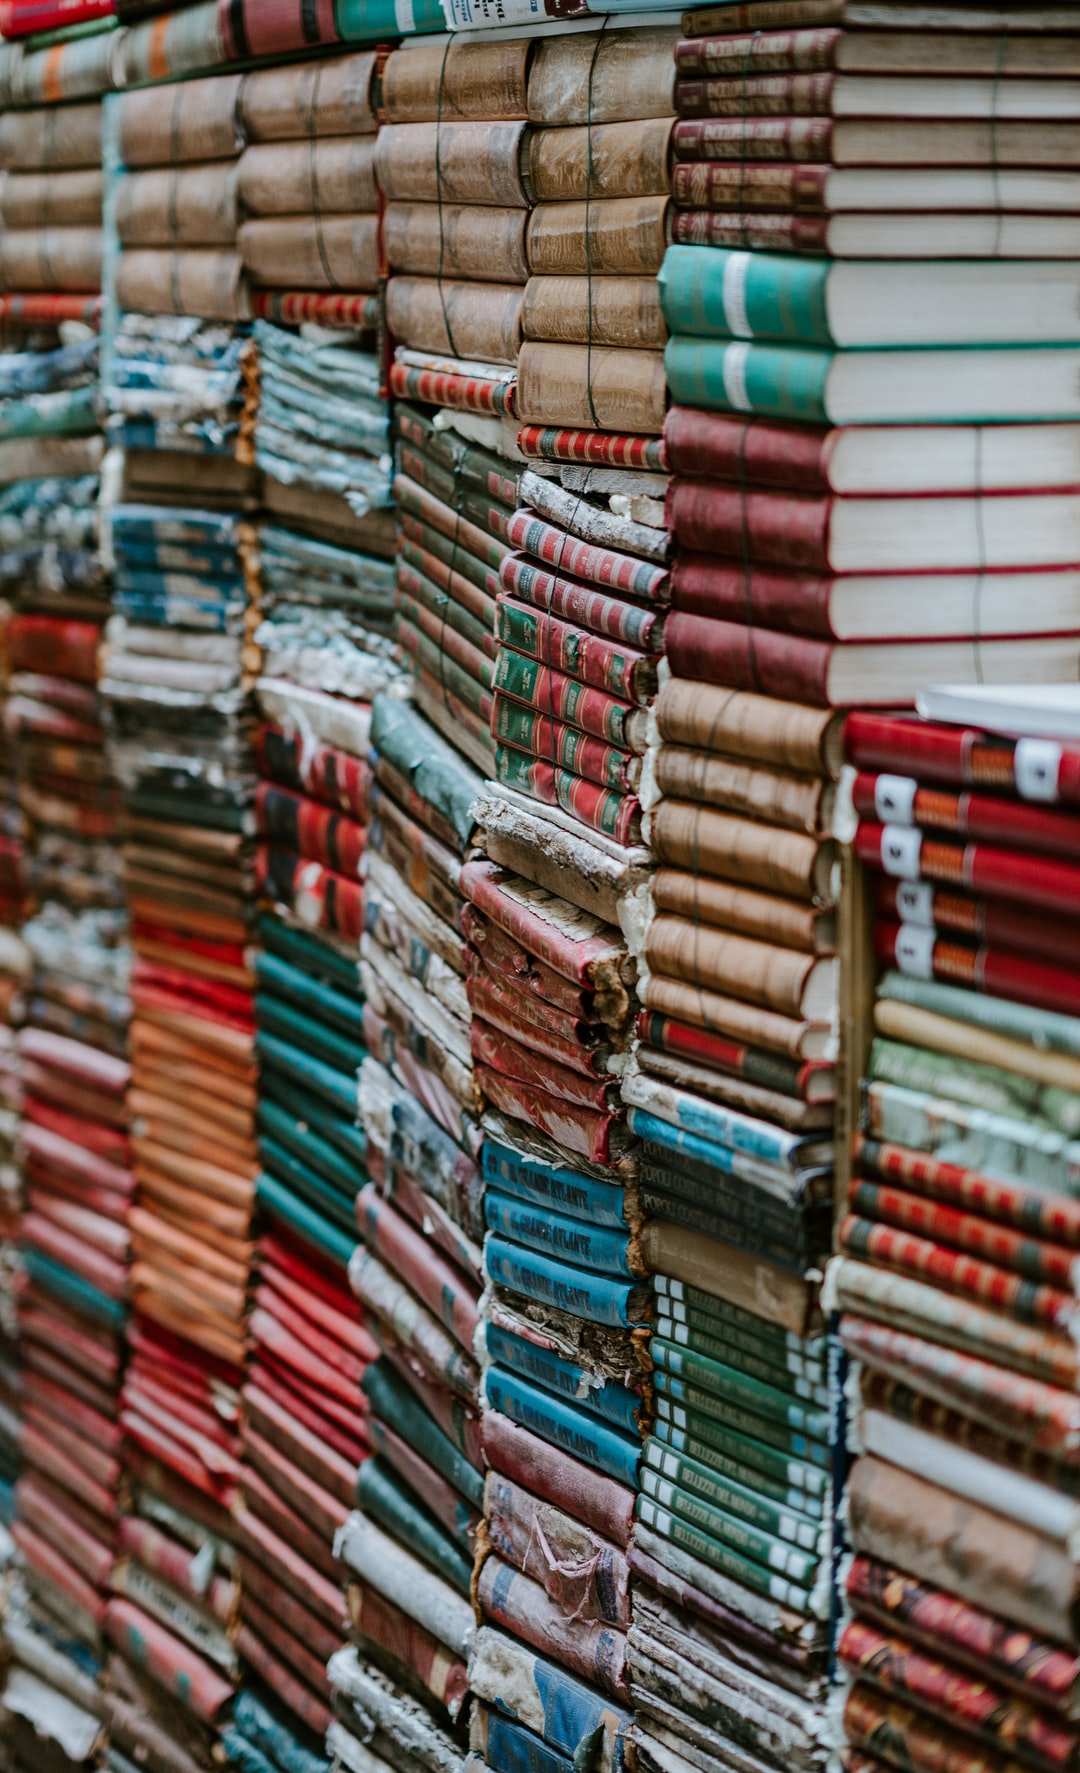 Piles of old worn books